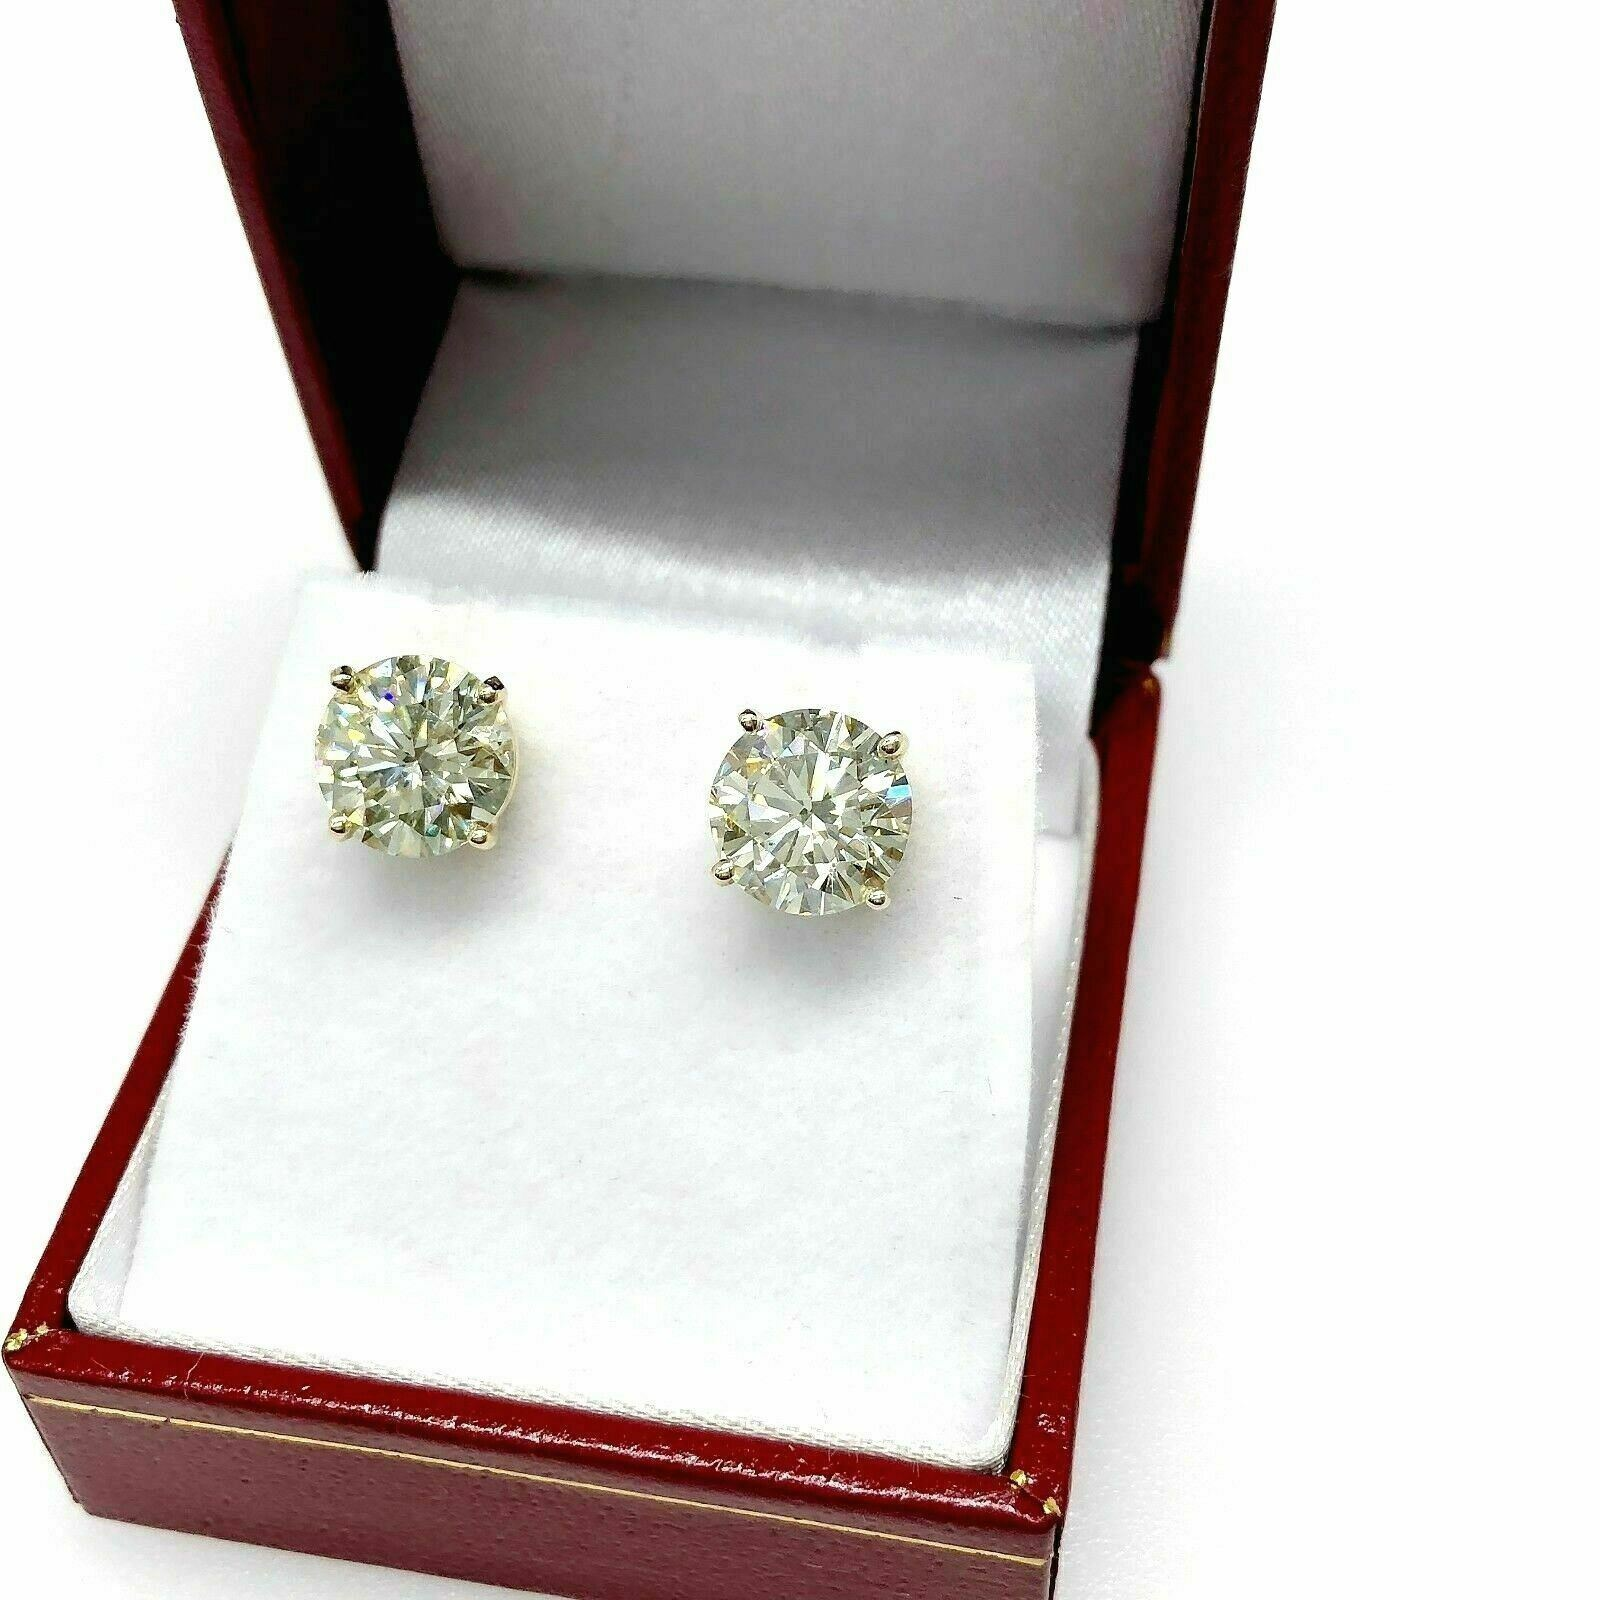 100% Natural Shiny 4.66 Carats t.w. Diamond SI - VS Stud Earrings 14K Yellow